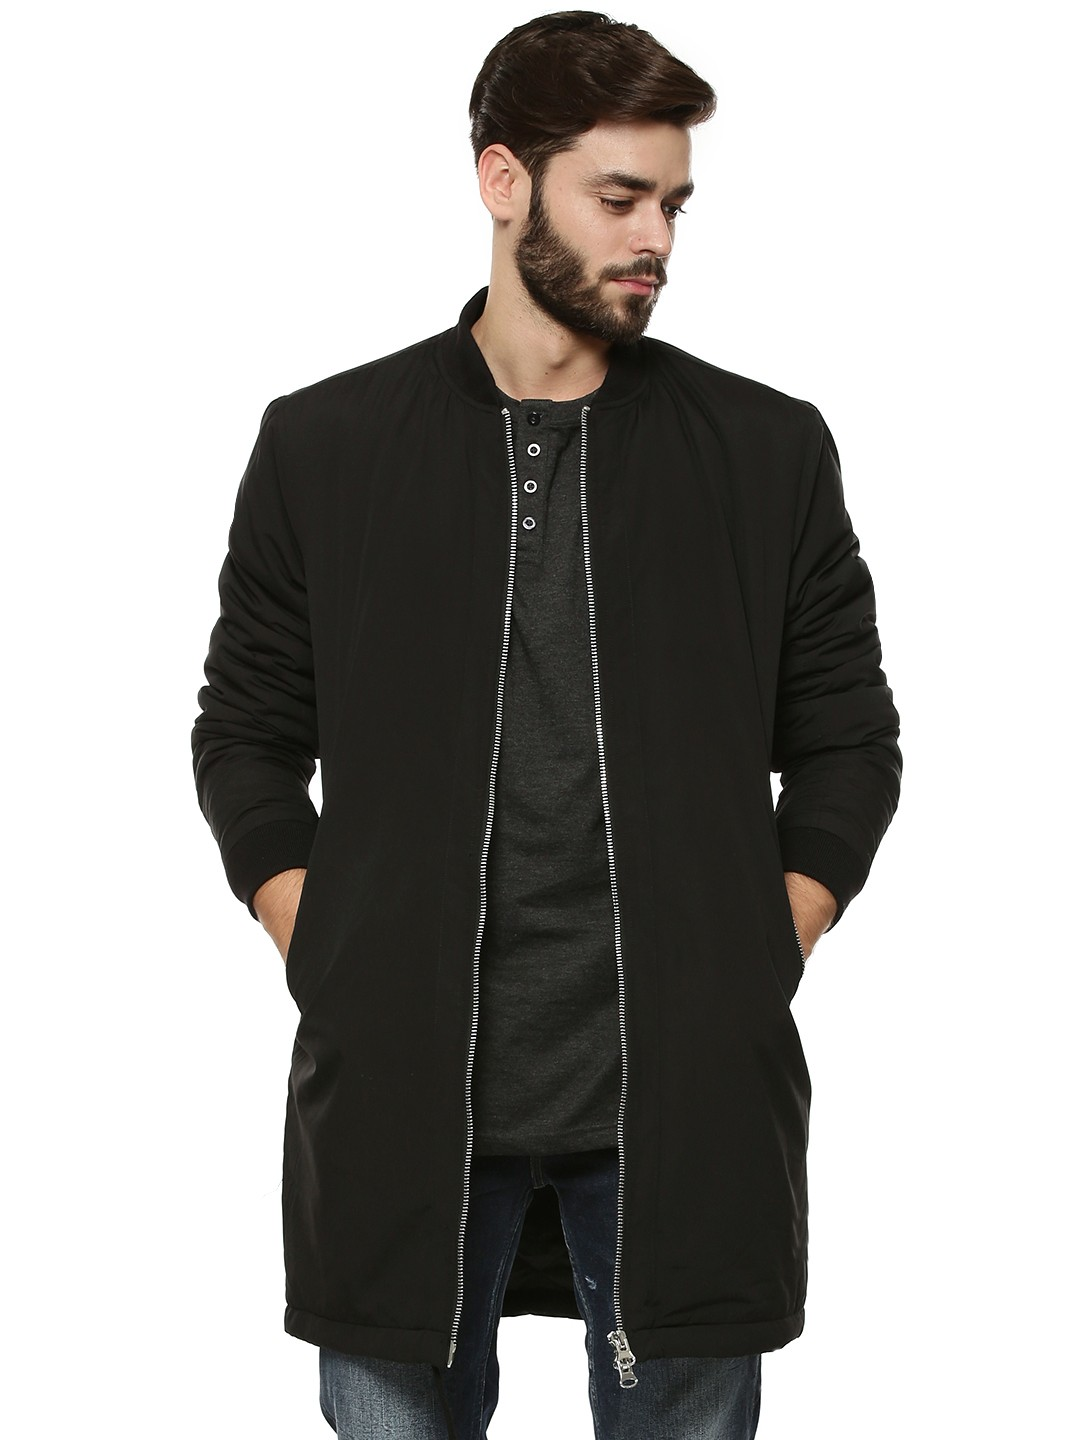 Buy online mens jackets in india